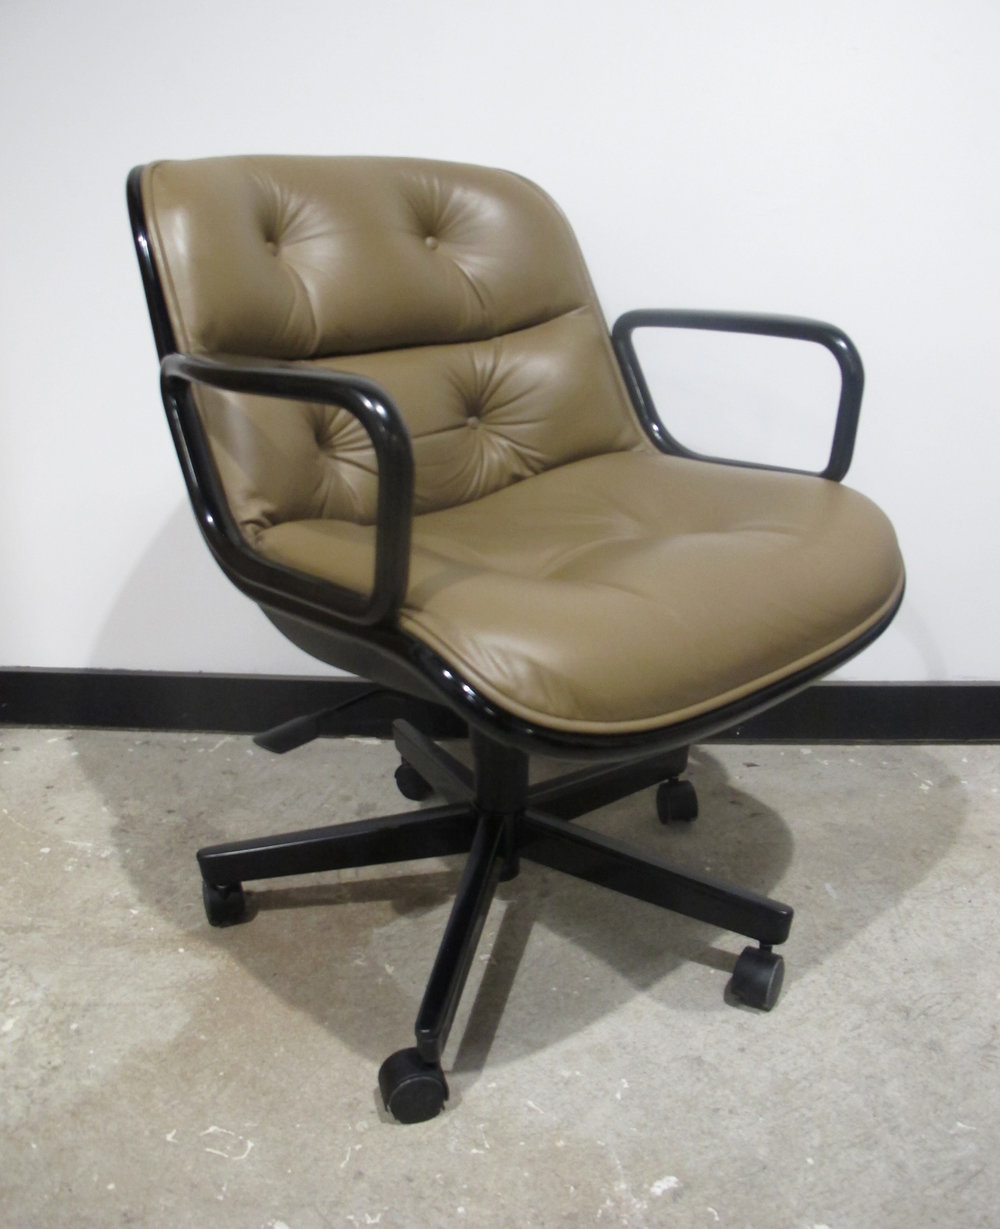 MID CENTURY EXECUTIVE ROLLING POLLOCK ARMCHAIR BY KNOLL